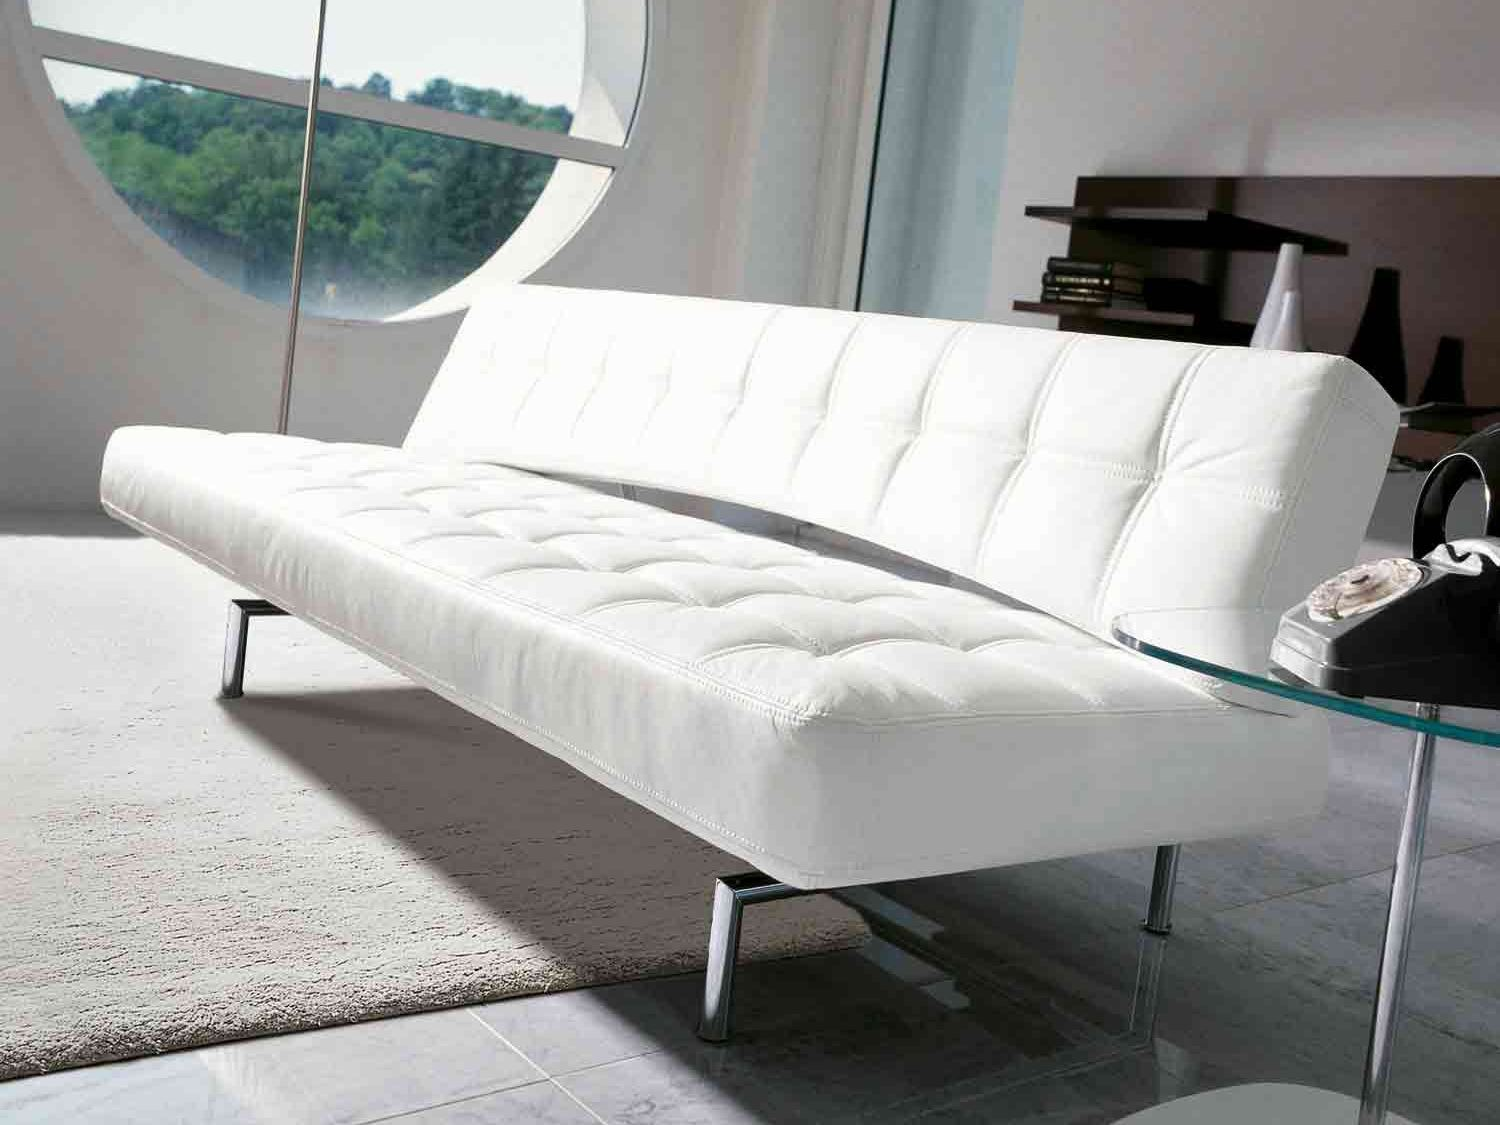 Pierrot sofa bed by bonaldo design pier vittorio prevedello for Sofa tiefe sitzfl che